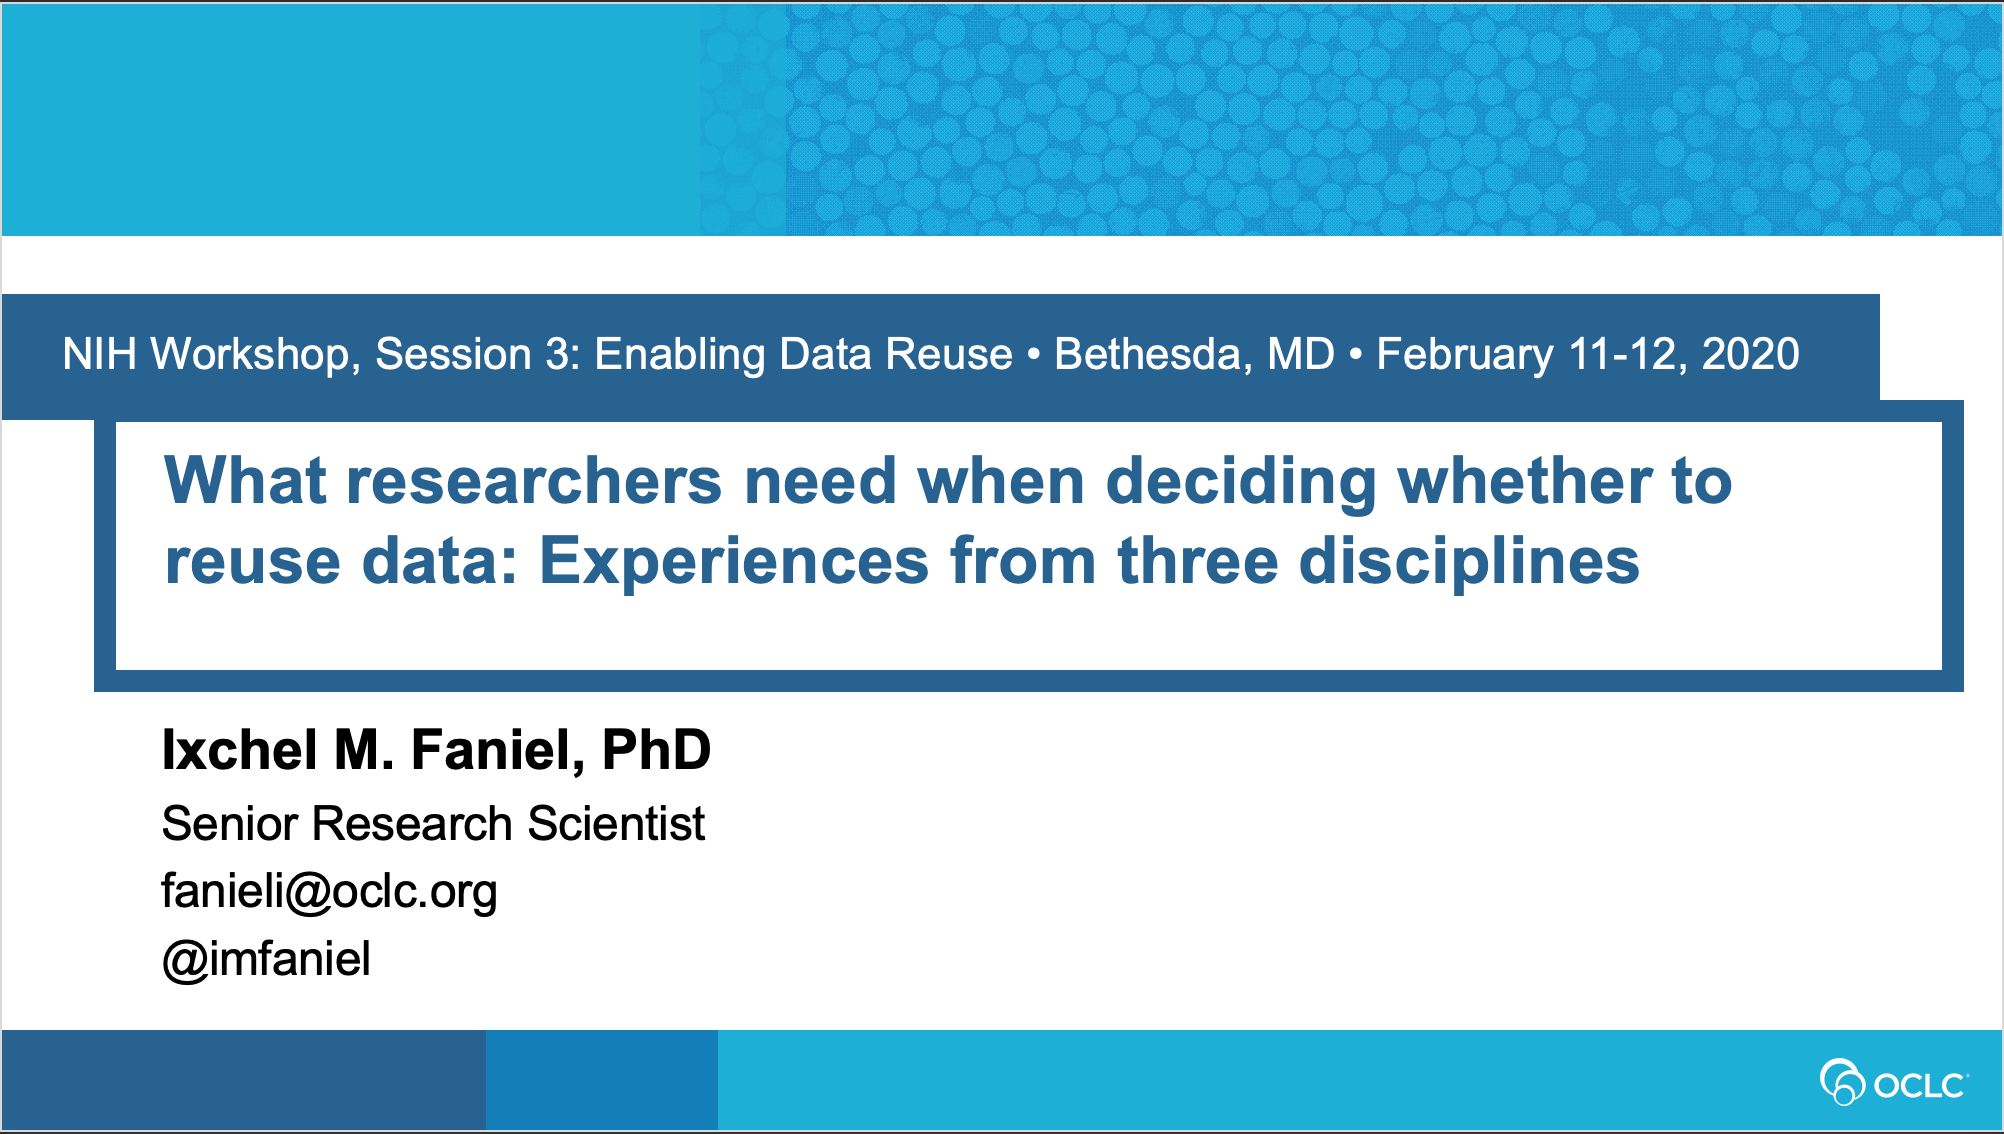 What researchers need when deciding whether to reuse data: Experiences from three disciplines